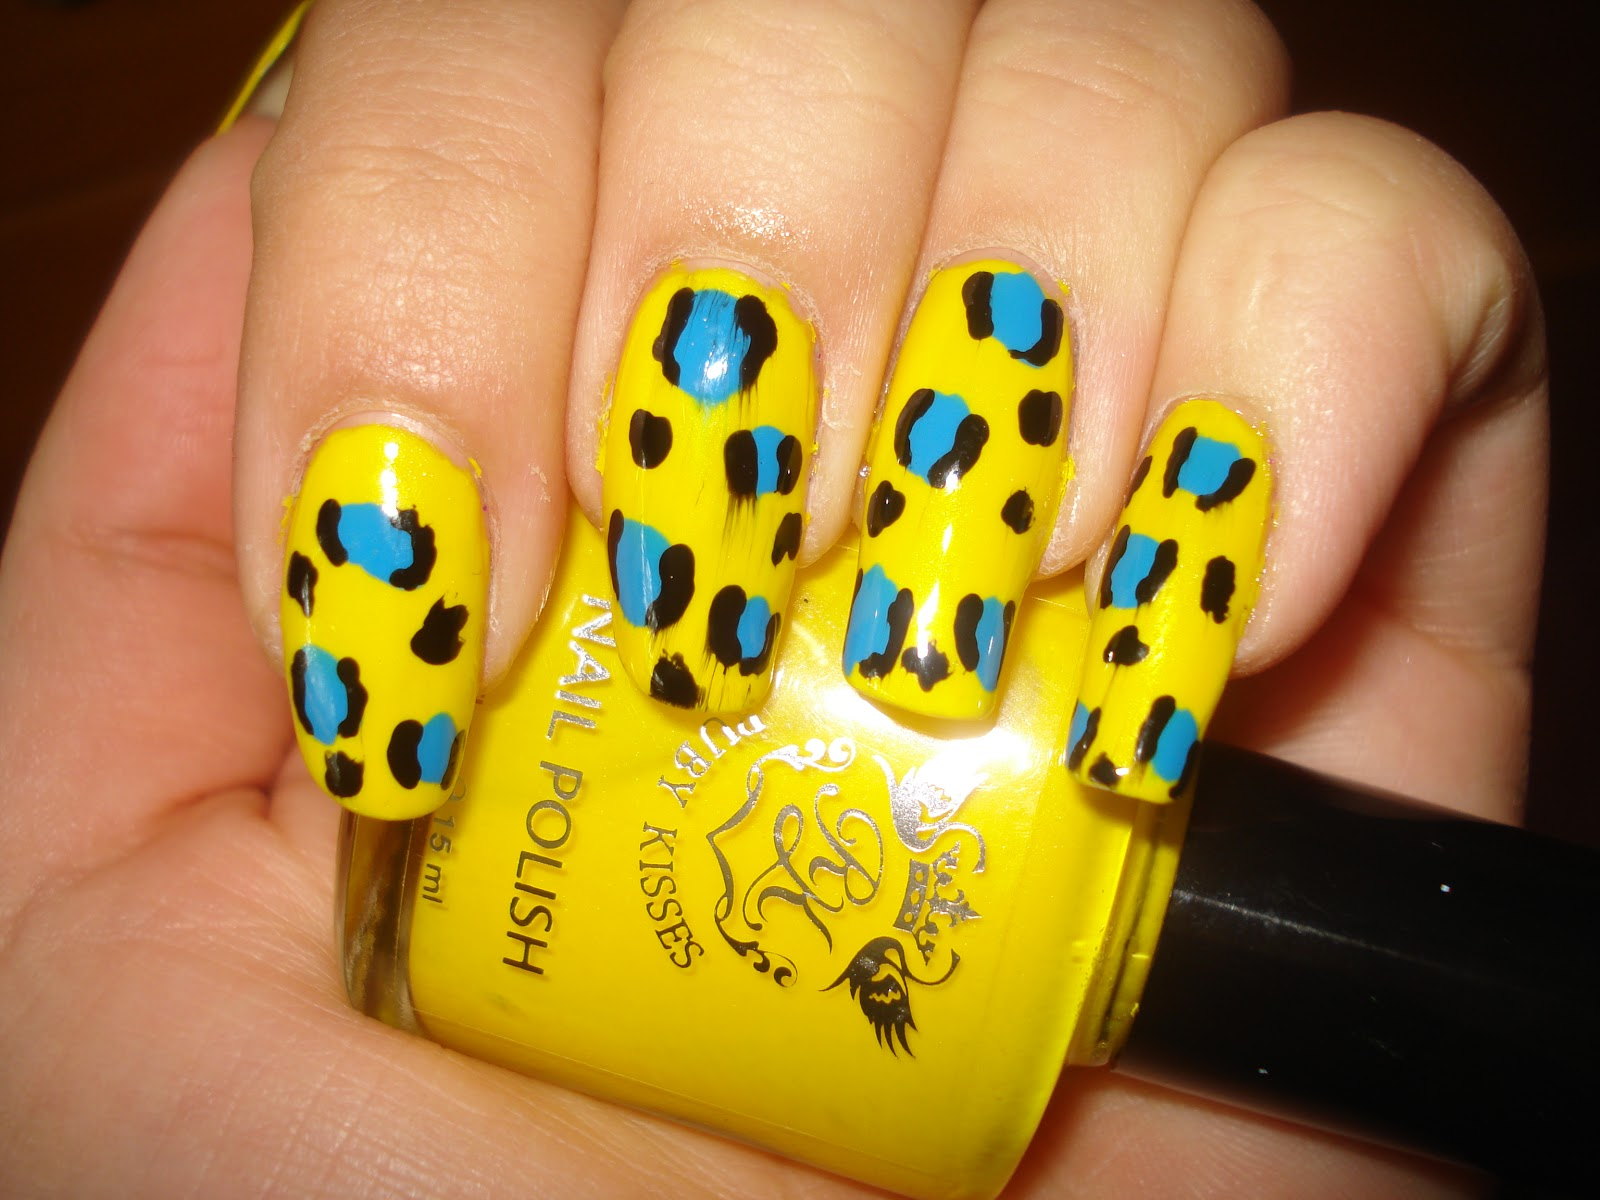 Arabgirl7: Yellow and blue cheetah print nail art